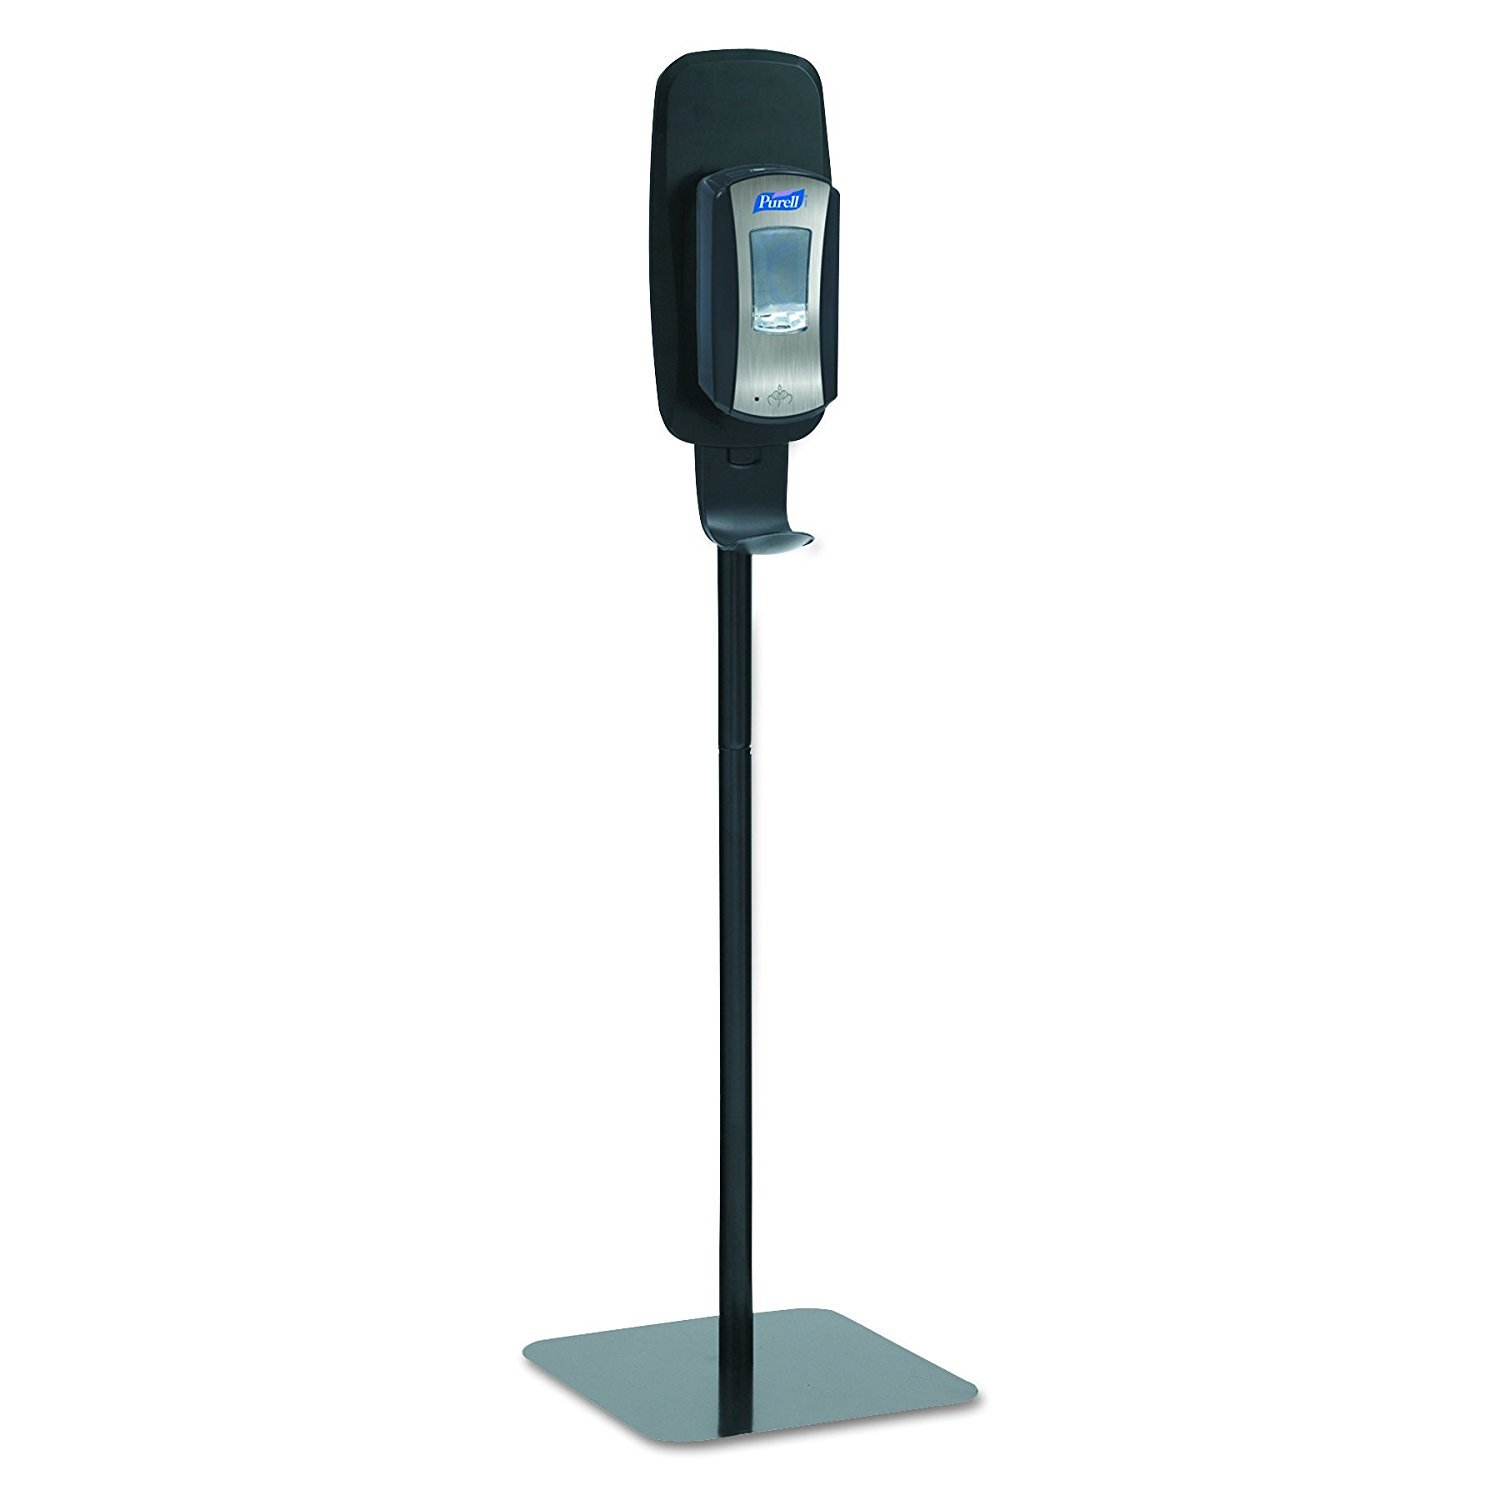 PURELL 2425-DS LTX or TFX Touch-Free Hand Sanitizer Dispenser Floor Stand, Black, 16 3/5w x 5 29/100d x 23 3/4h (Pack of 3)